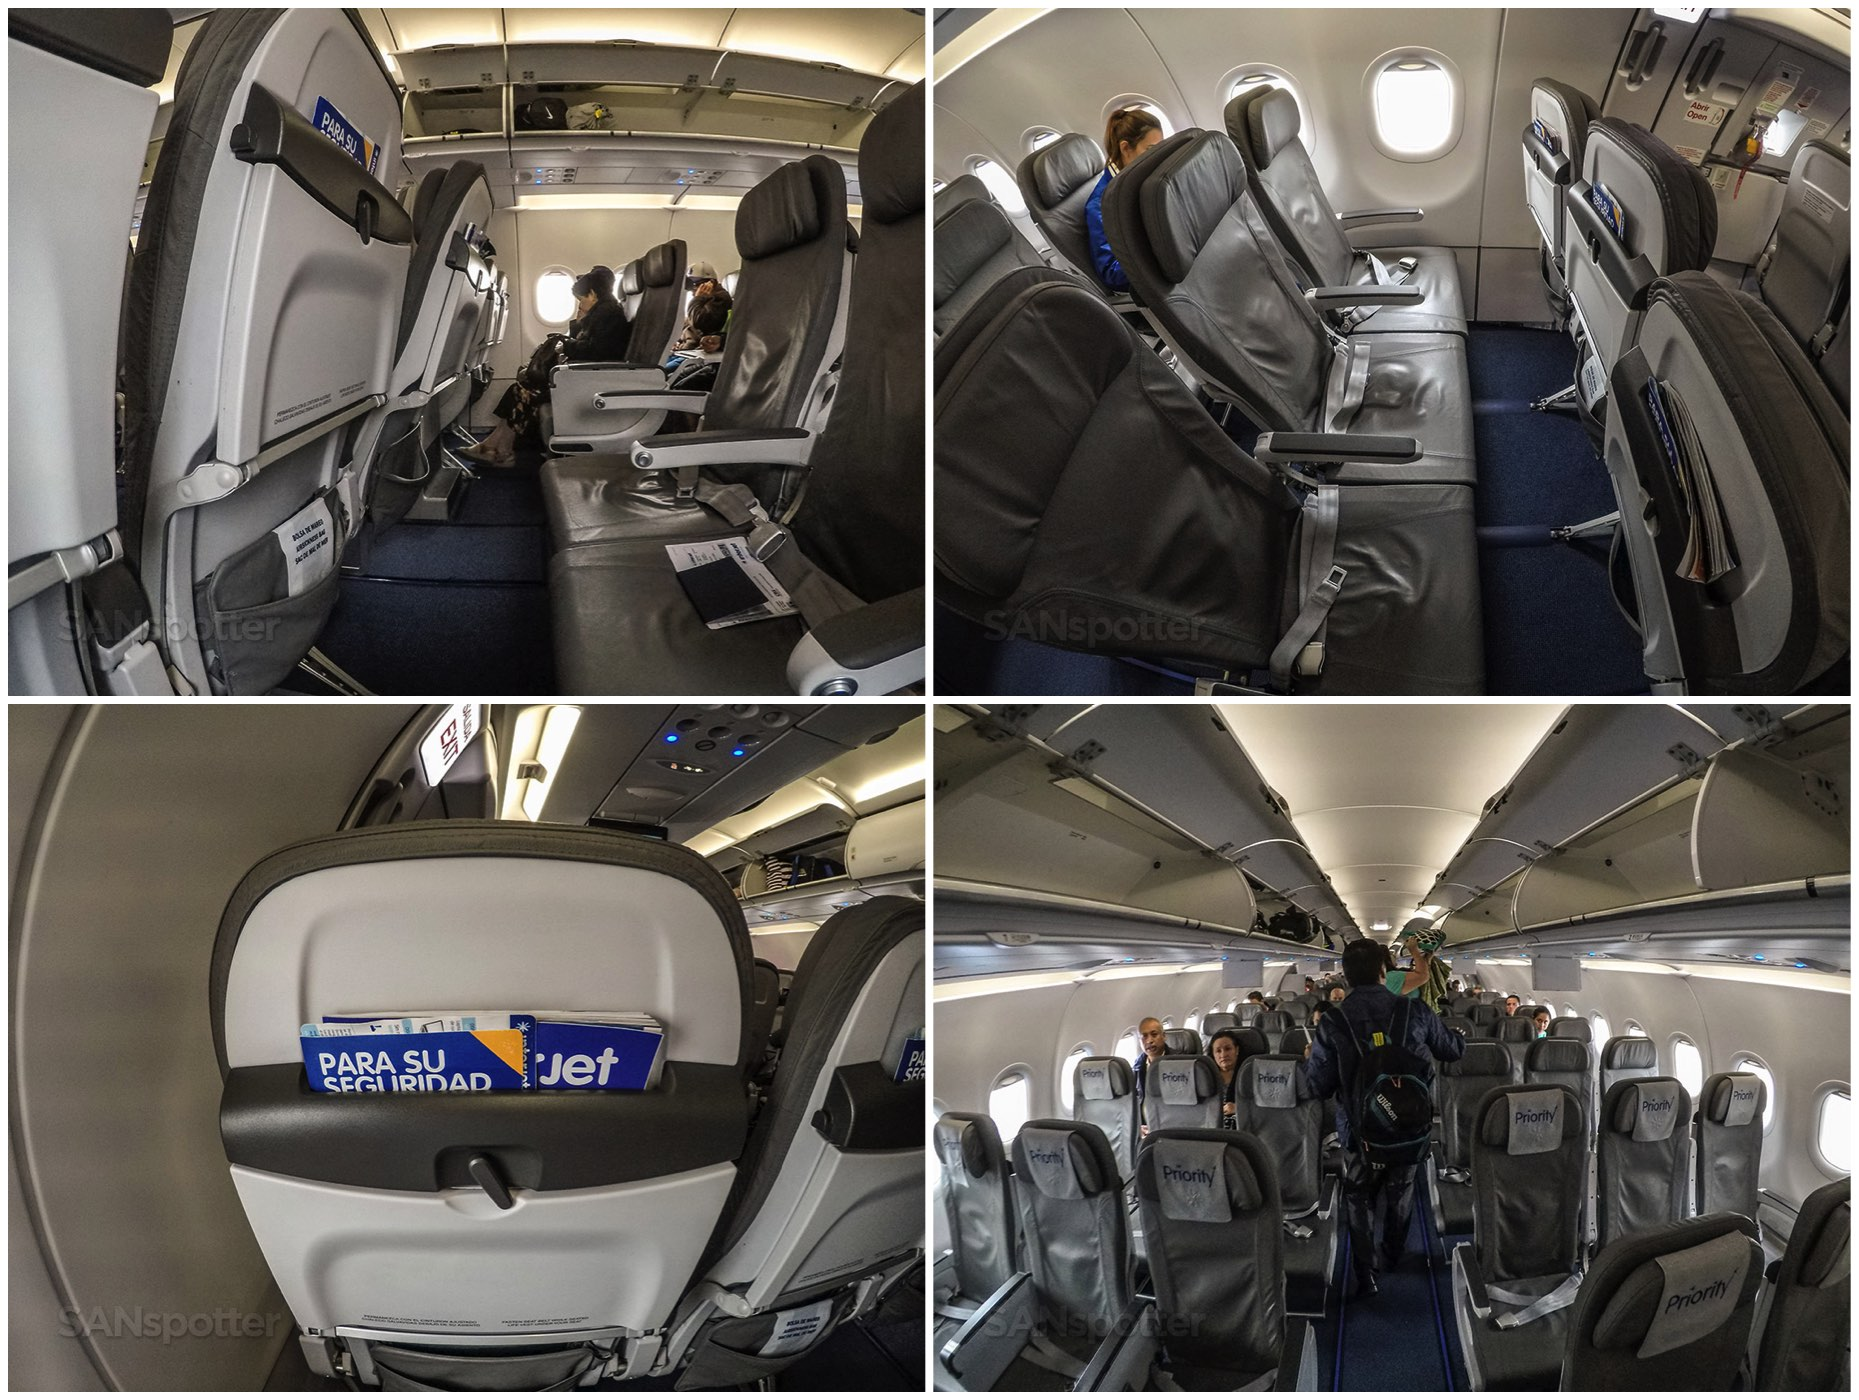 Interjet A321 seats and interior